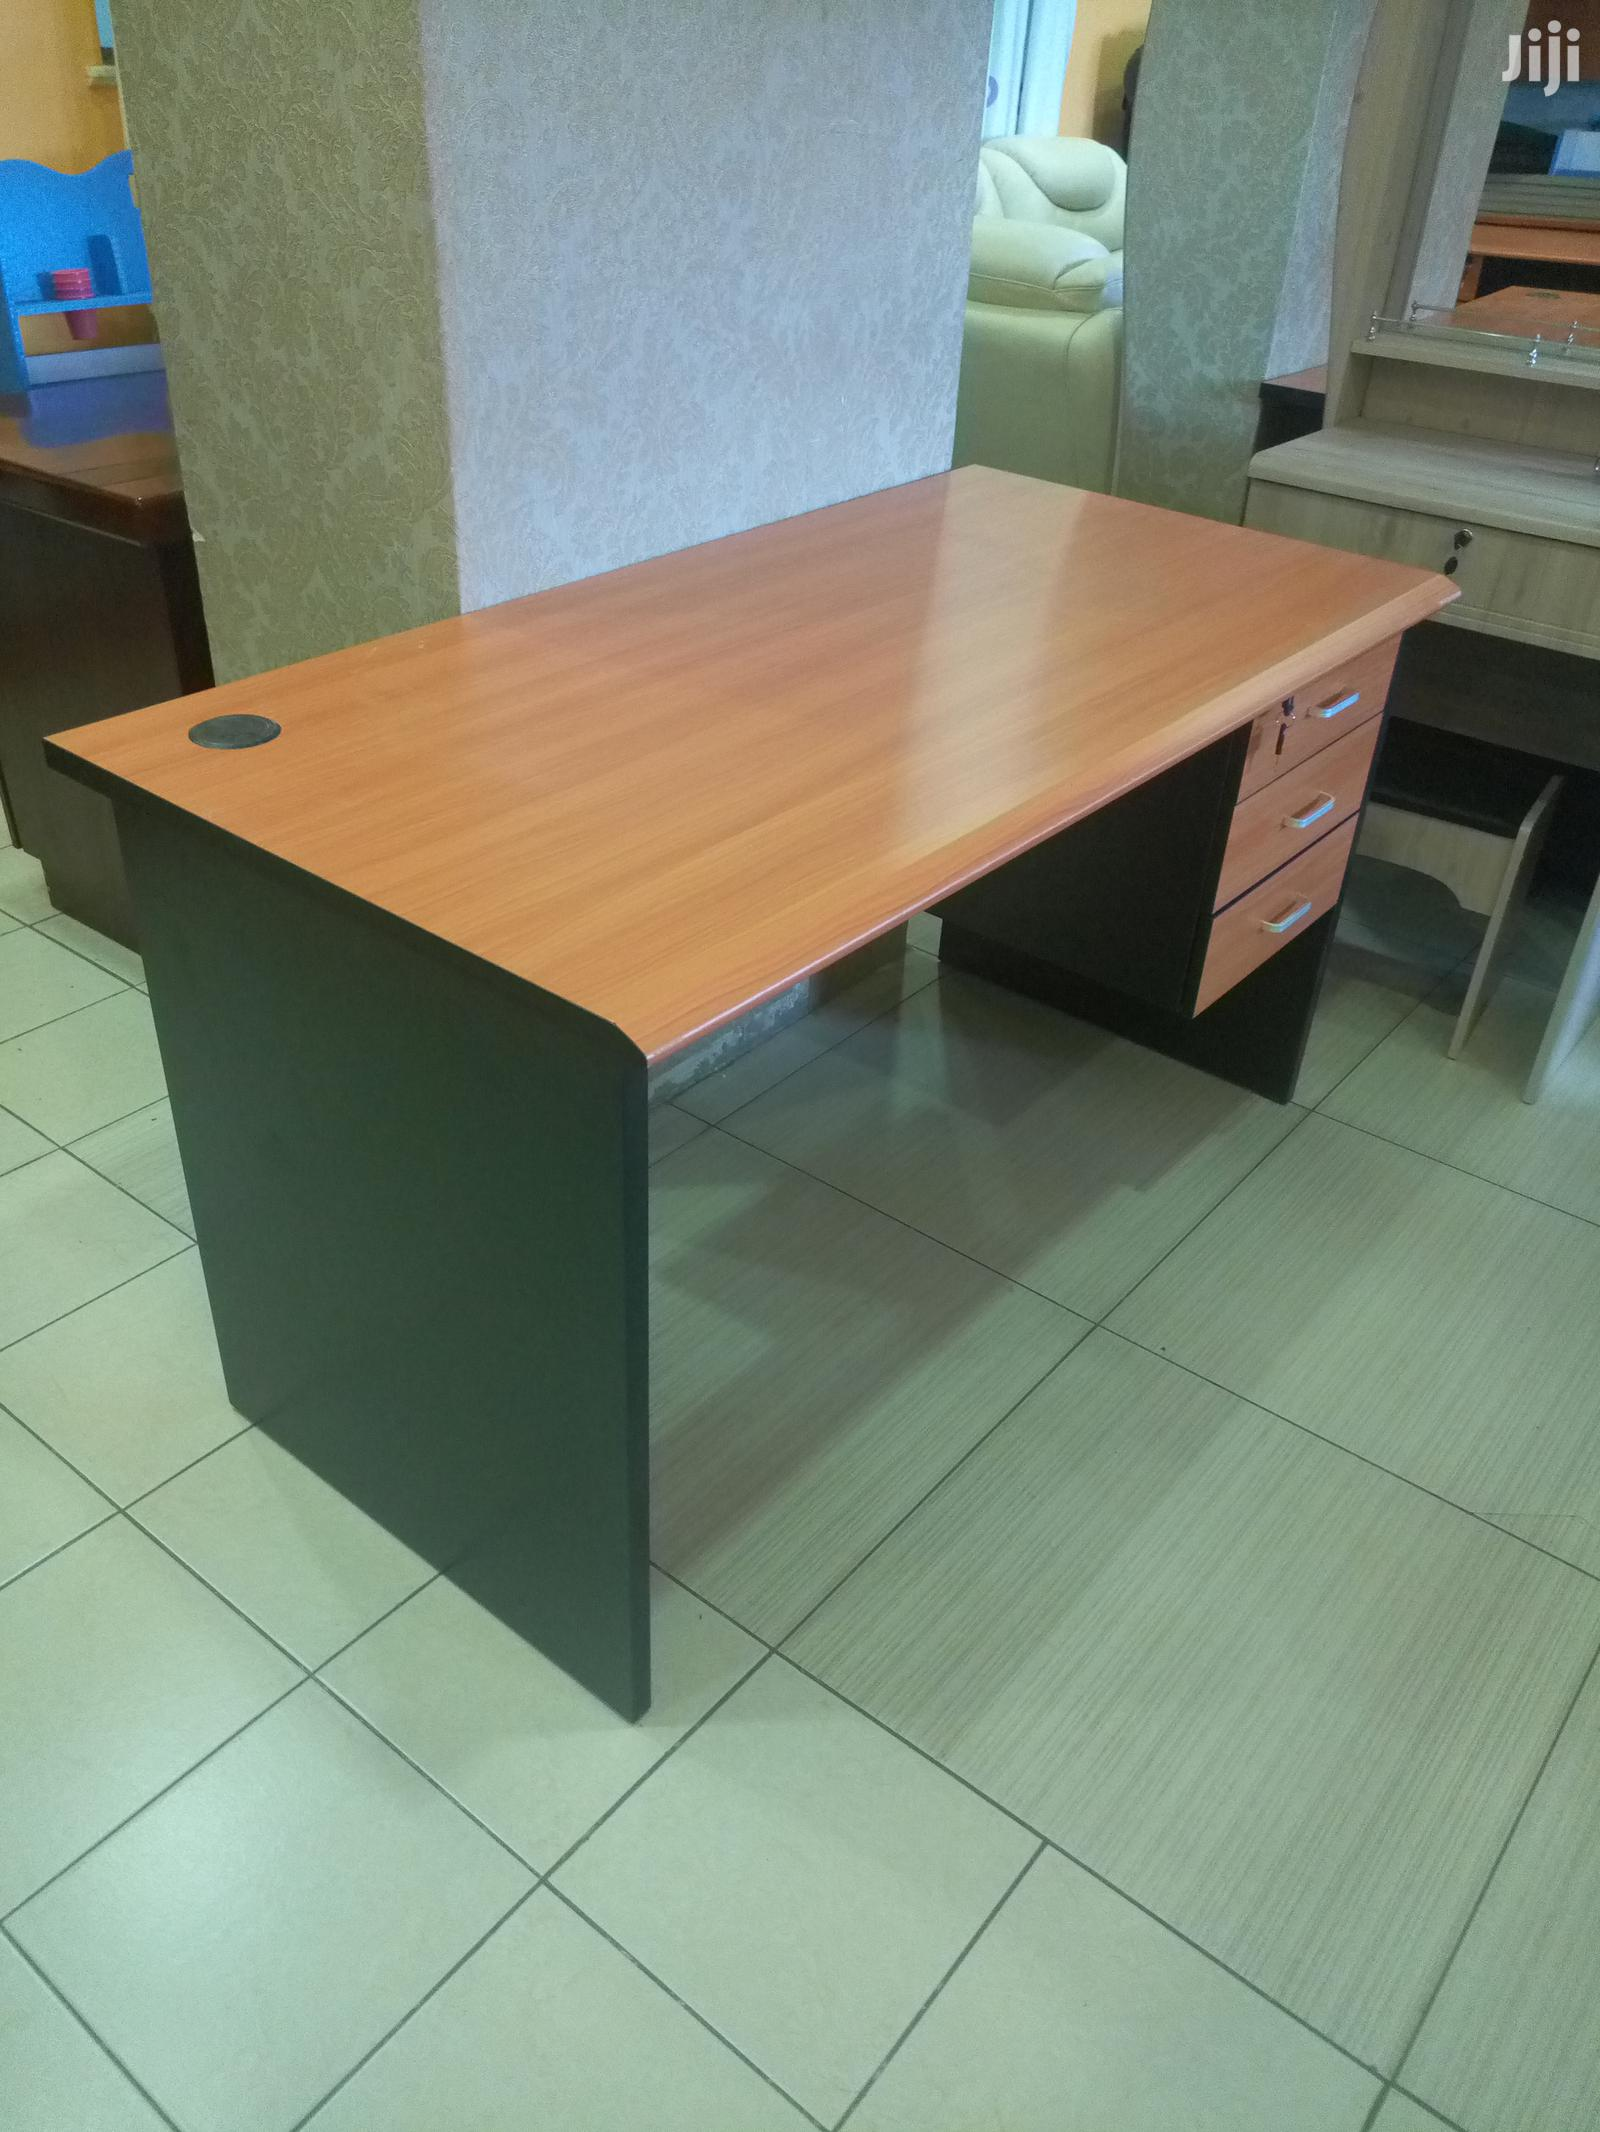 Archive: 1.4m Imported Office Desks